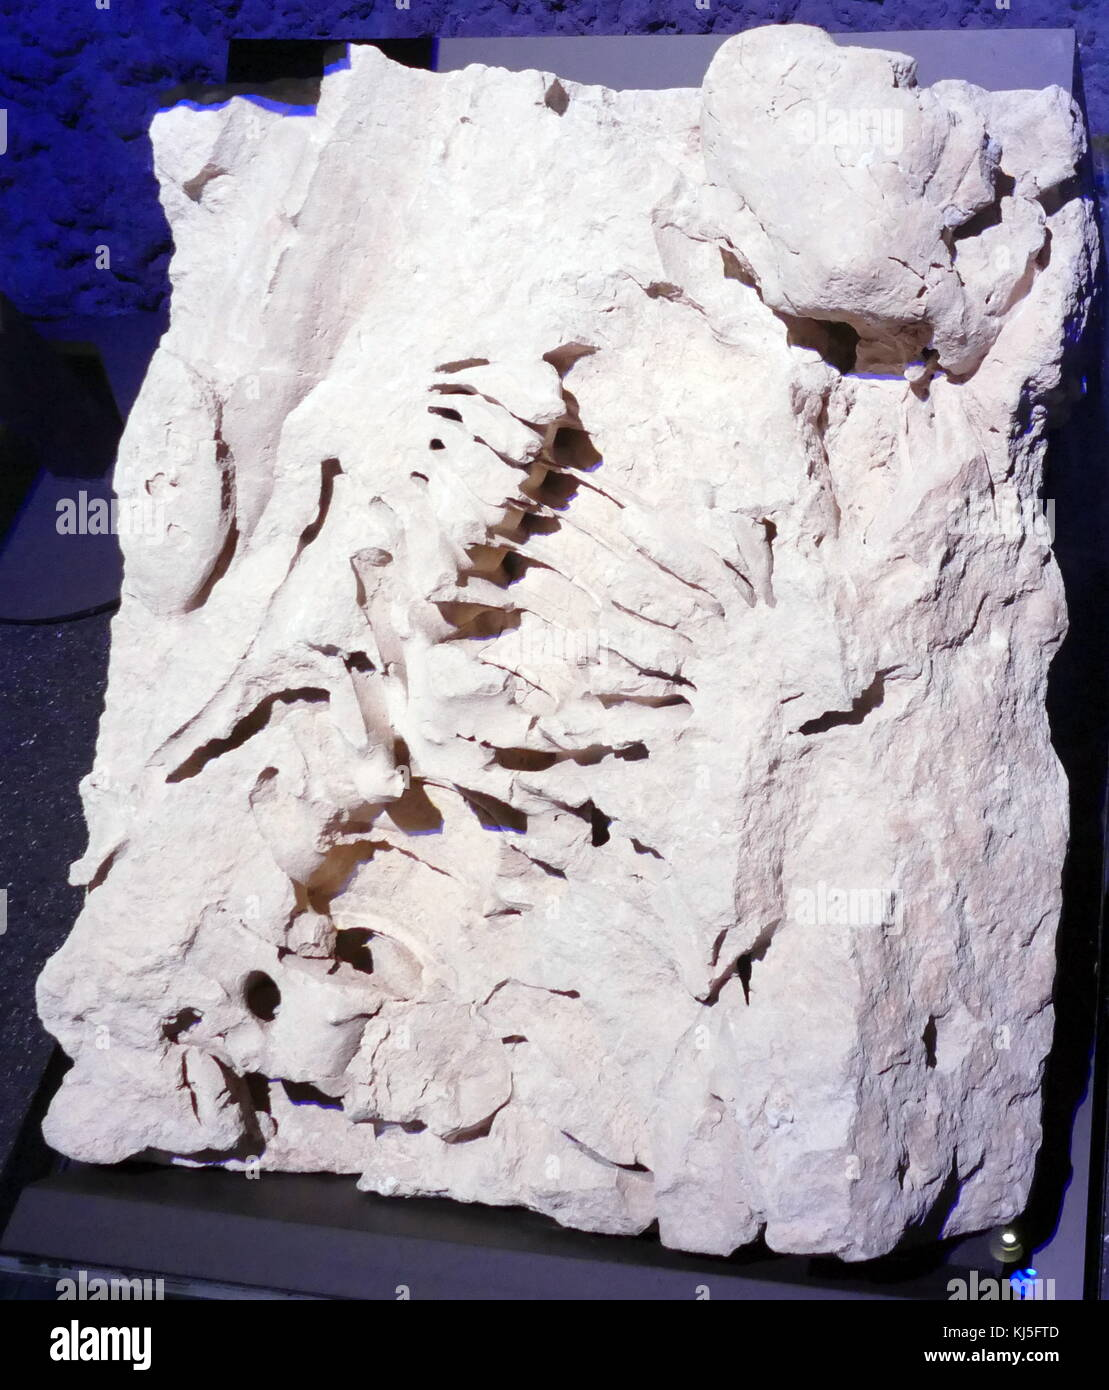 Fragments of the spinal column and vertebrae from the Livyatan, an extinct genus of physeteroid whale, similar in - Stock Image